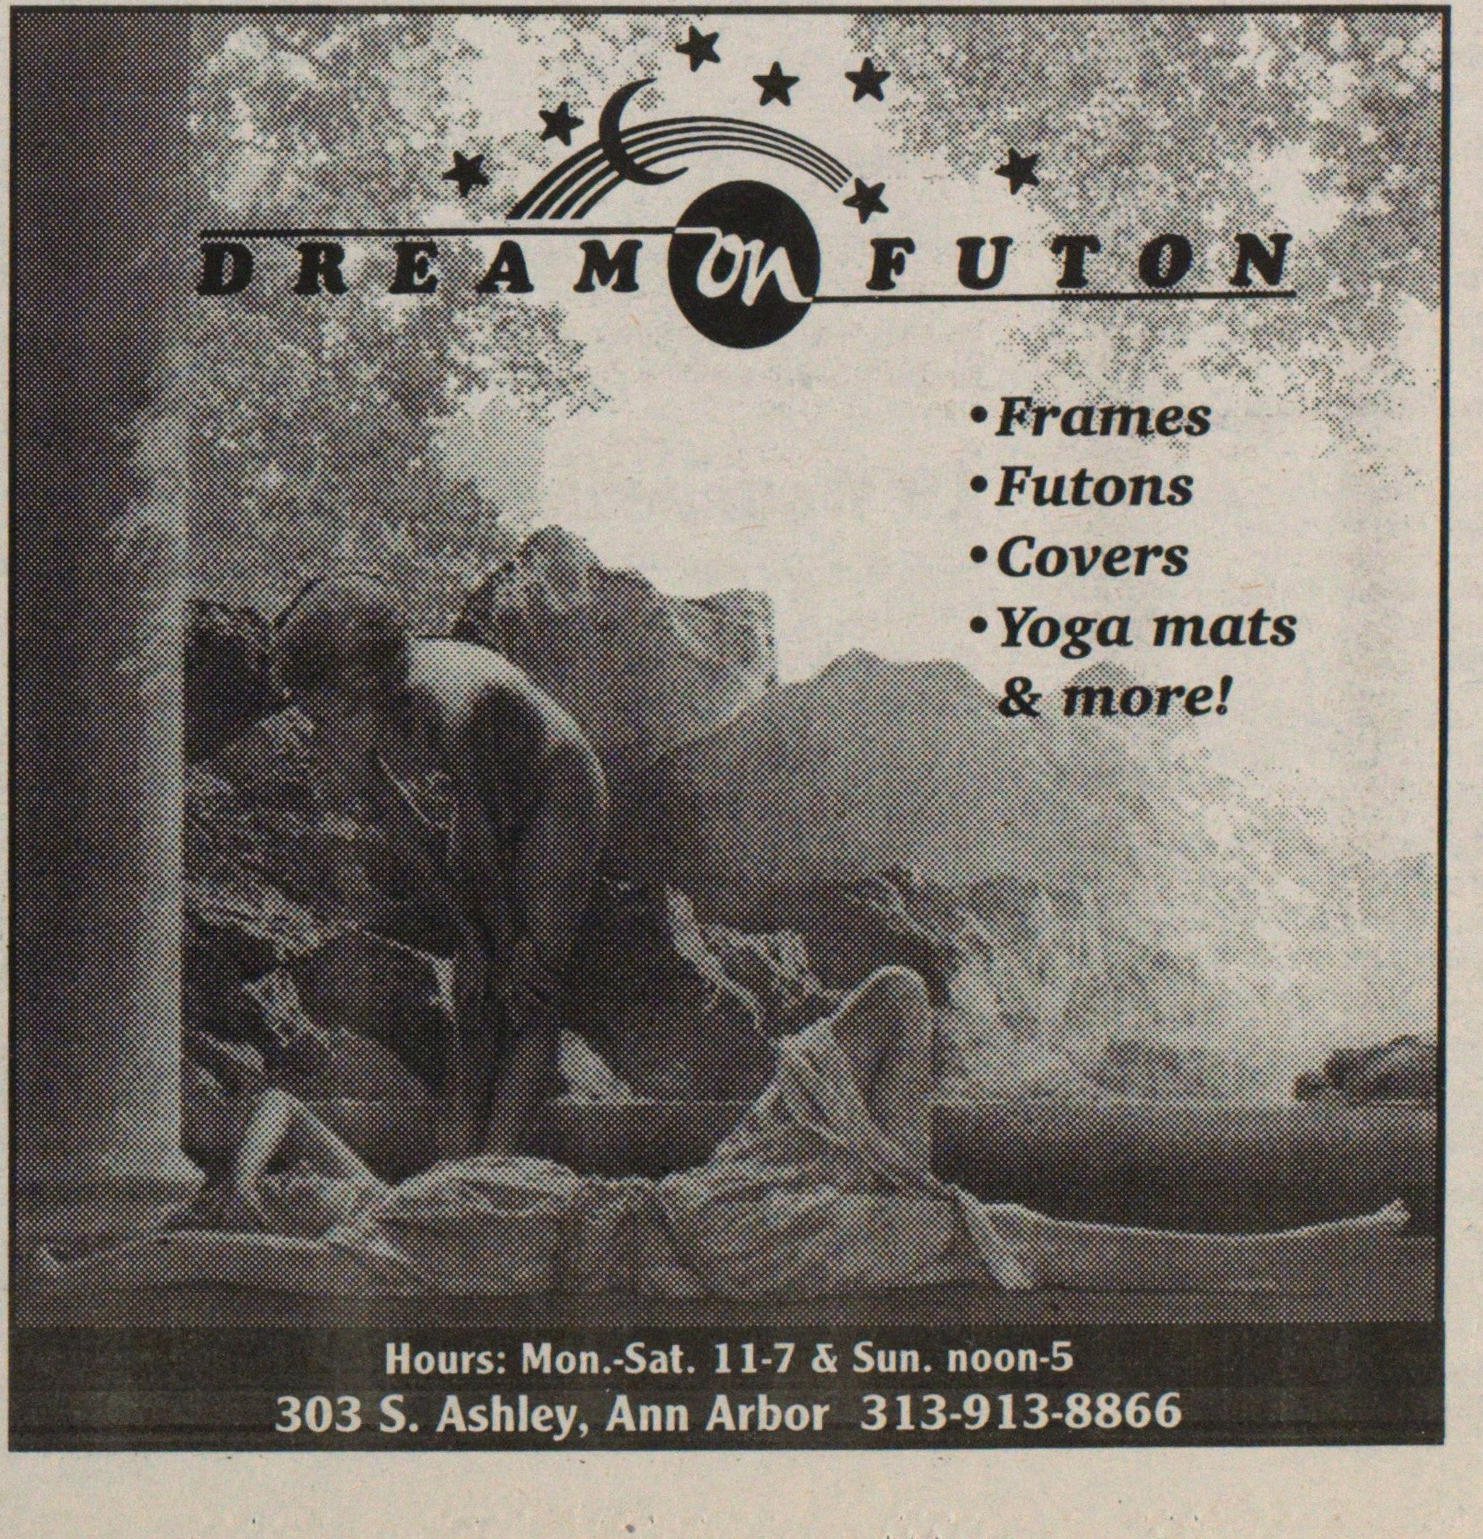 Dream On Futon